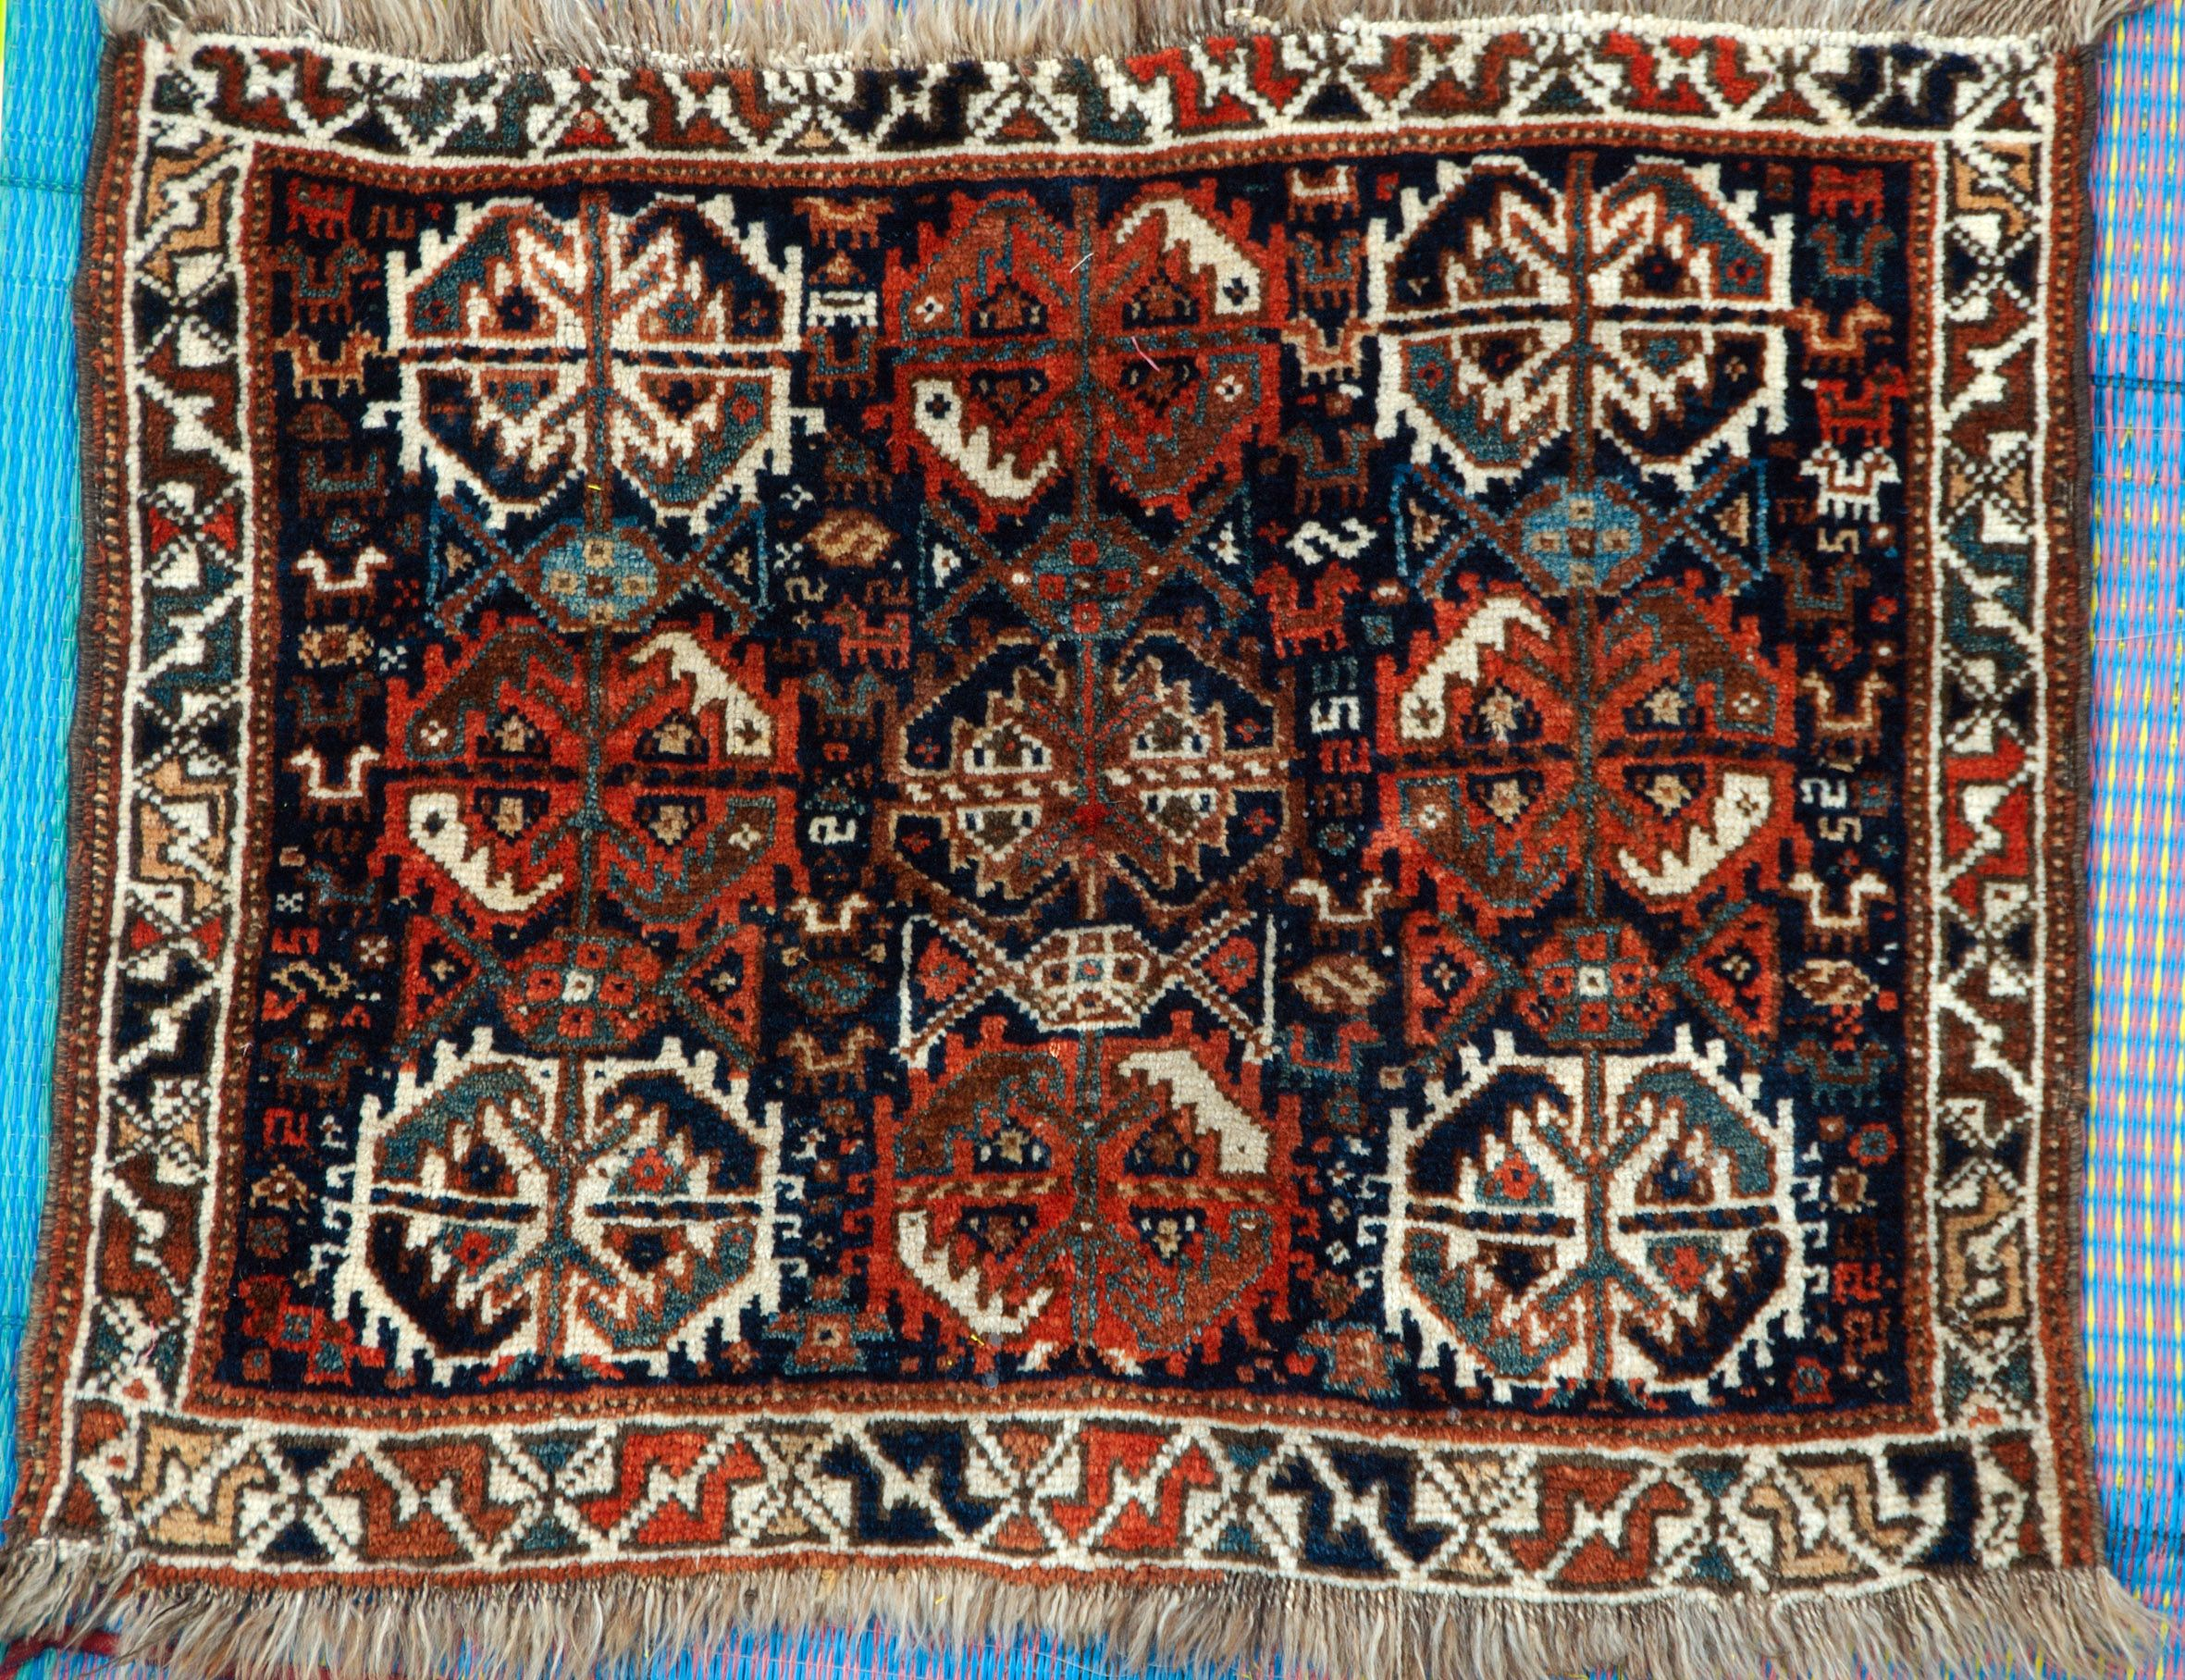 Dsc 3671 0 Jpg 2362 1816 Arabian Nights Bohemian Rug Rugs